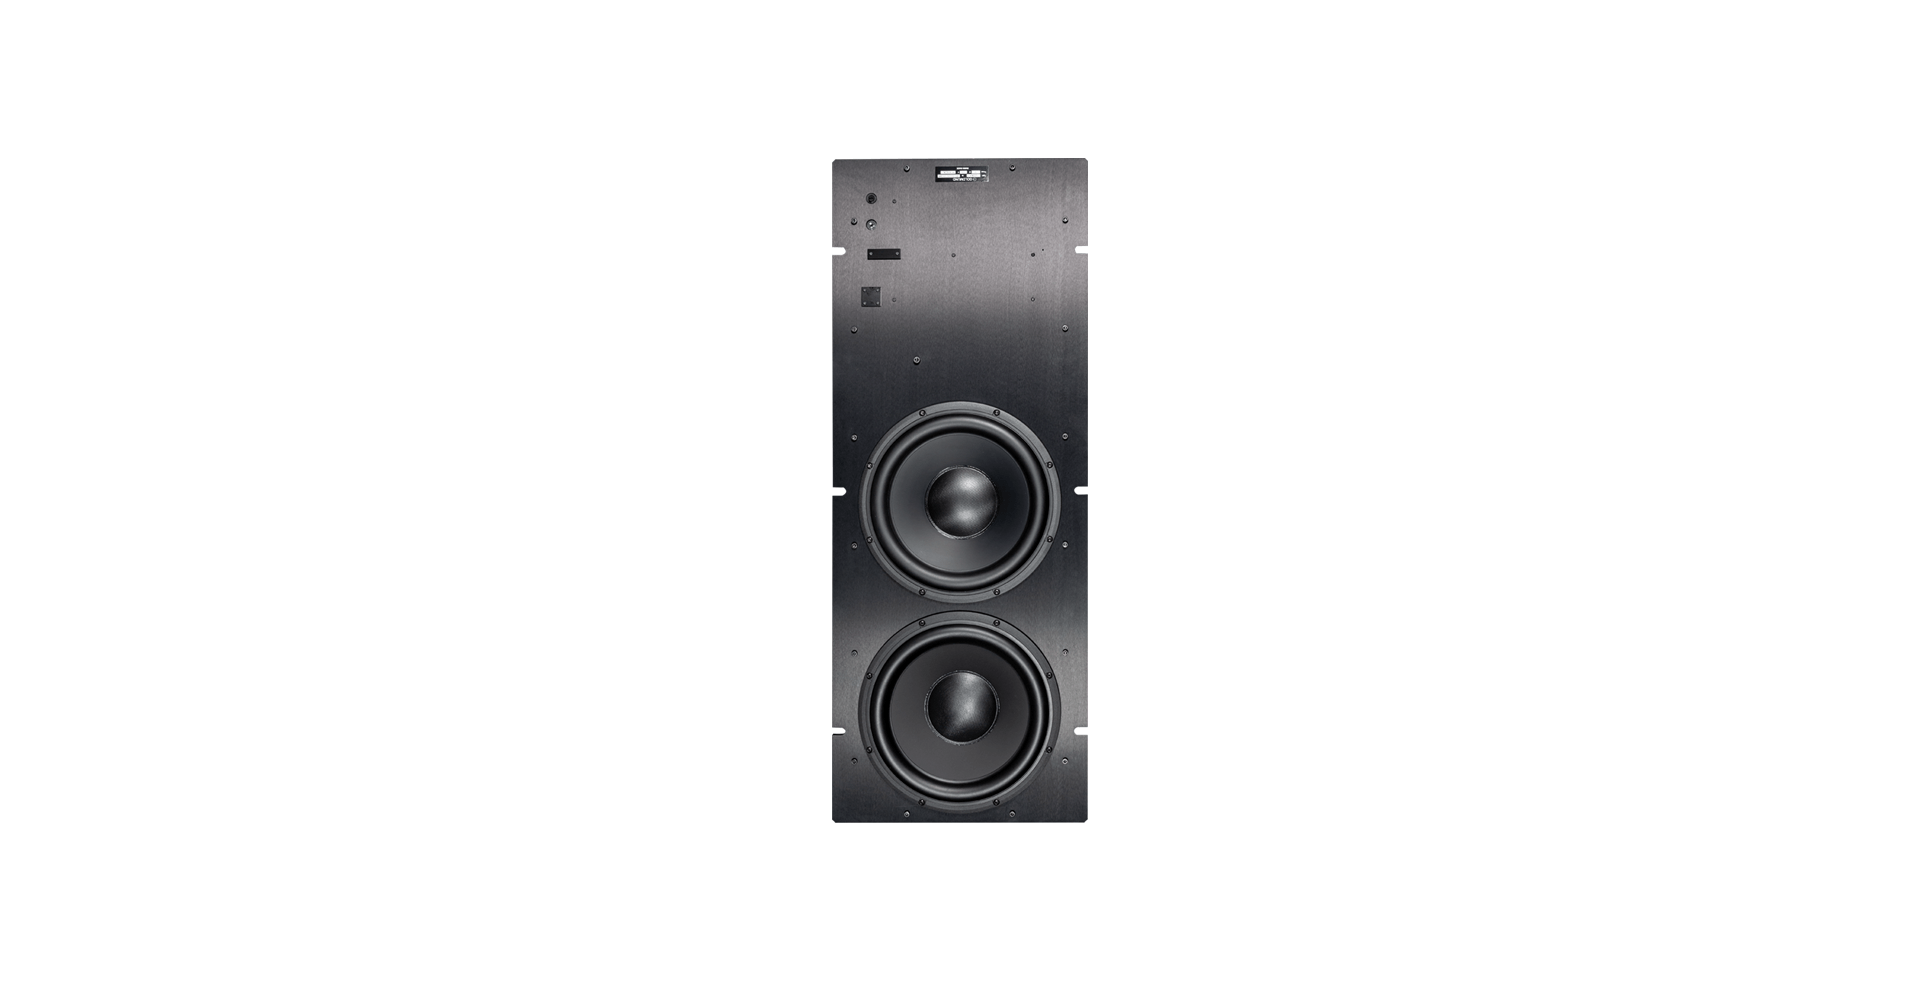 Logos Subwall mk2 invisible subwoofer for home theater